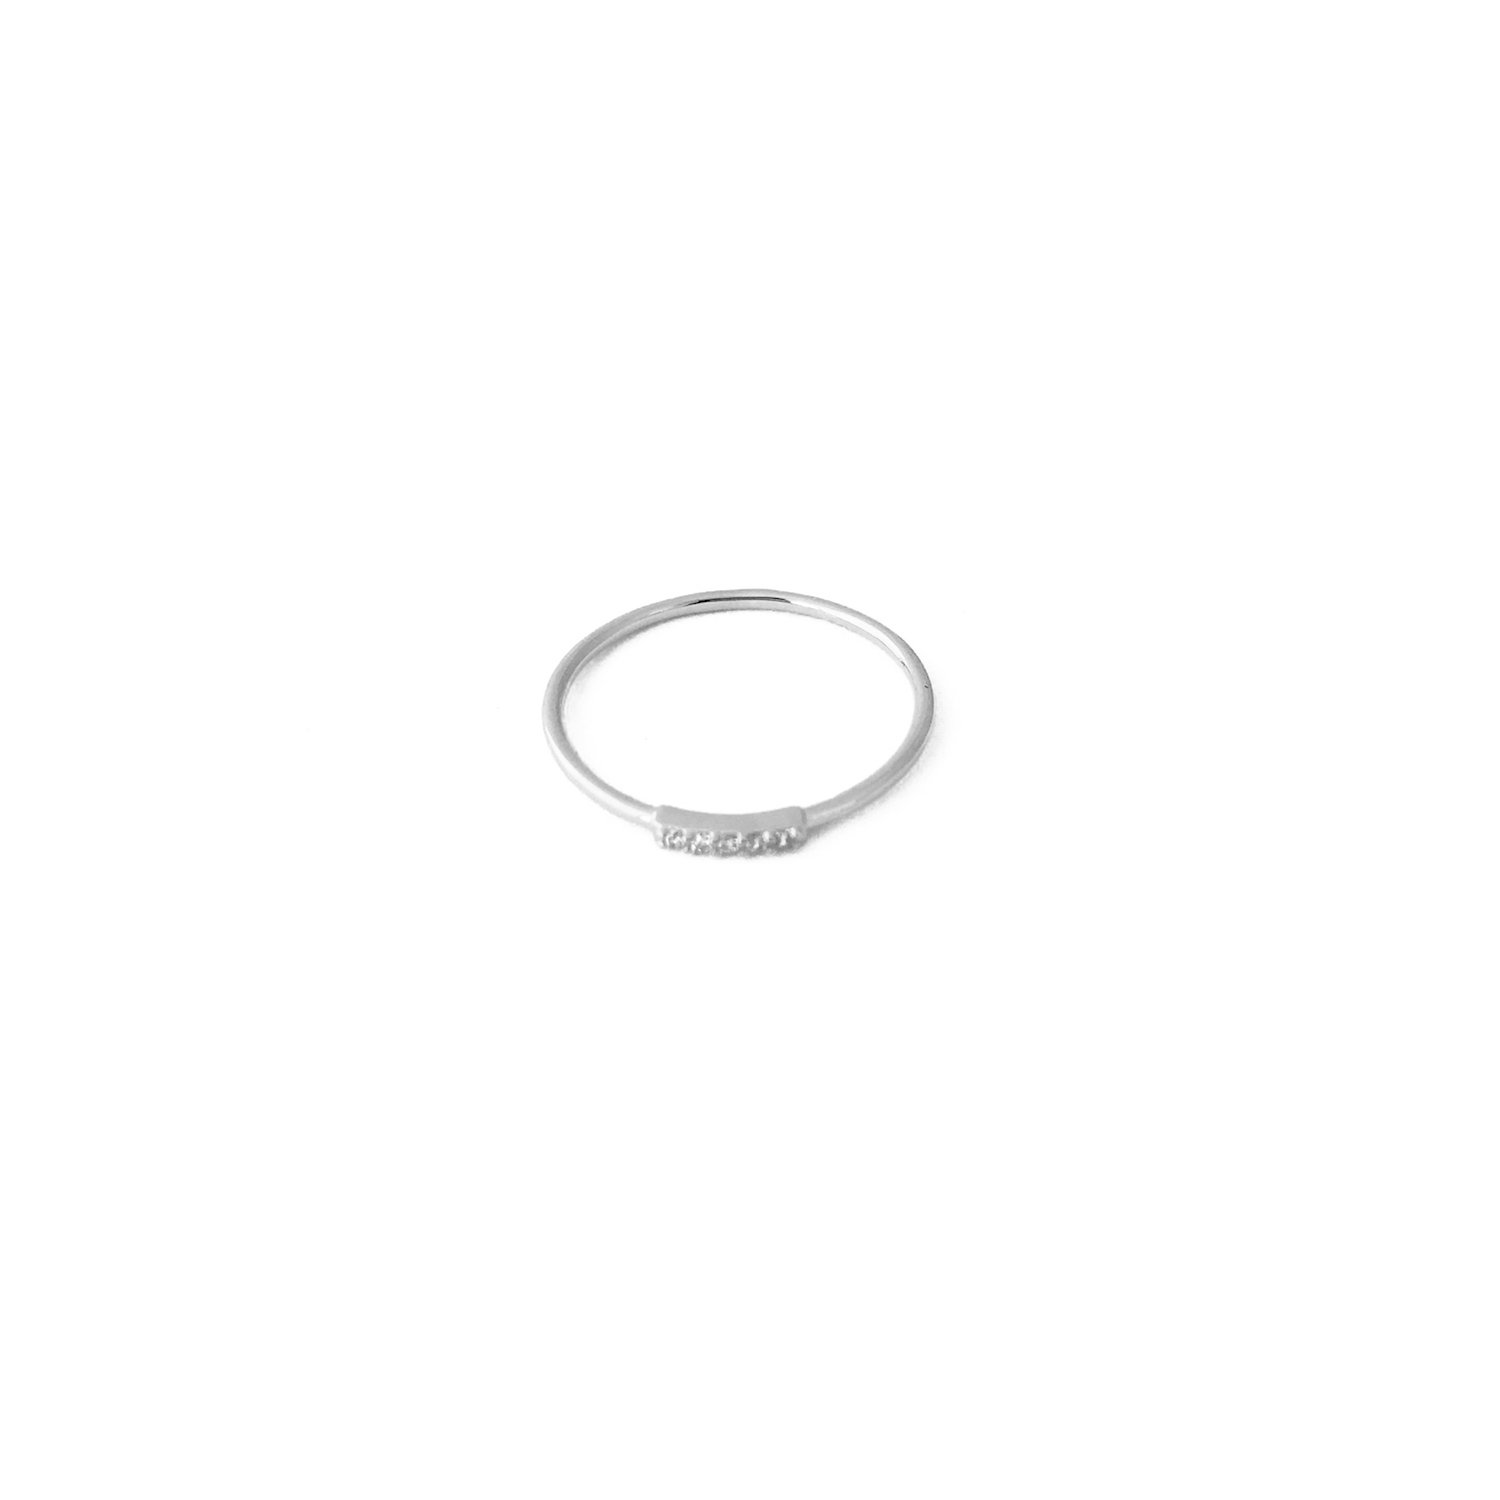 HONEYCAT Mini Crystal Row Ring in Sterling Silver Plate | Minimalist, Delicate Jewelry (Silver 8)